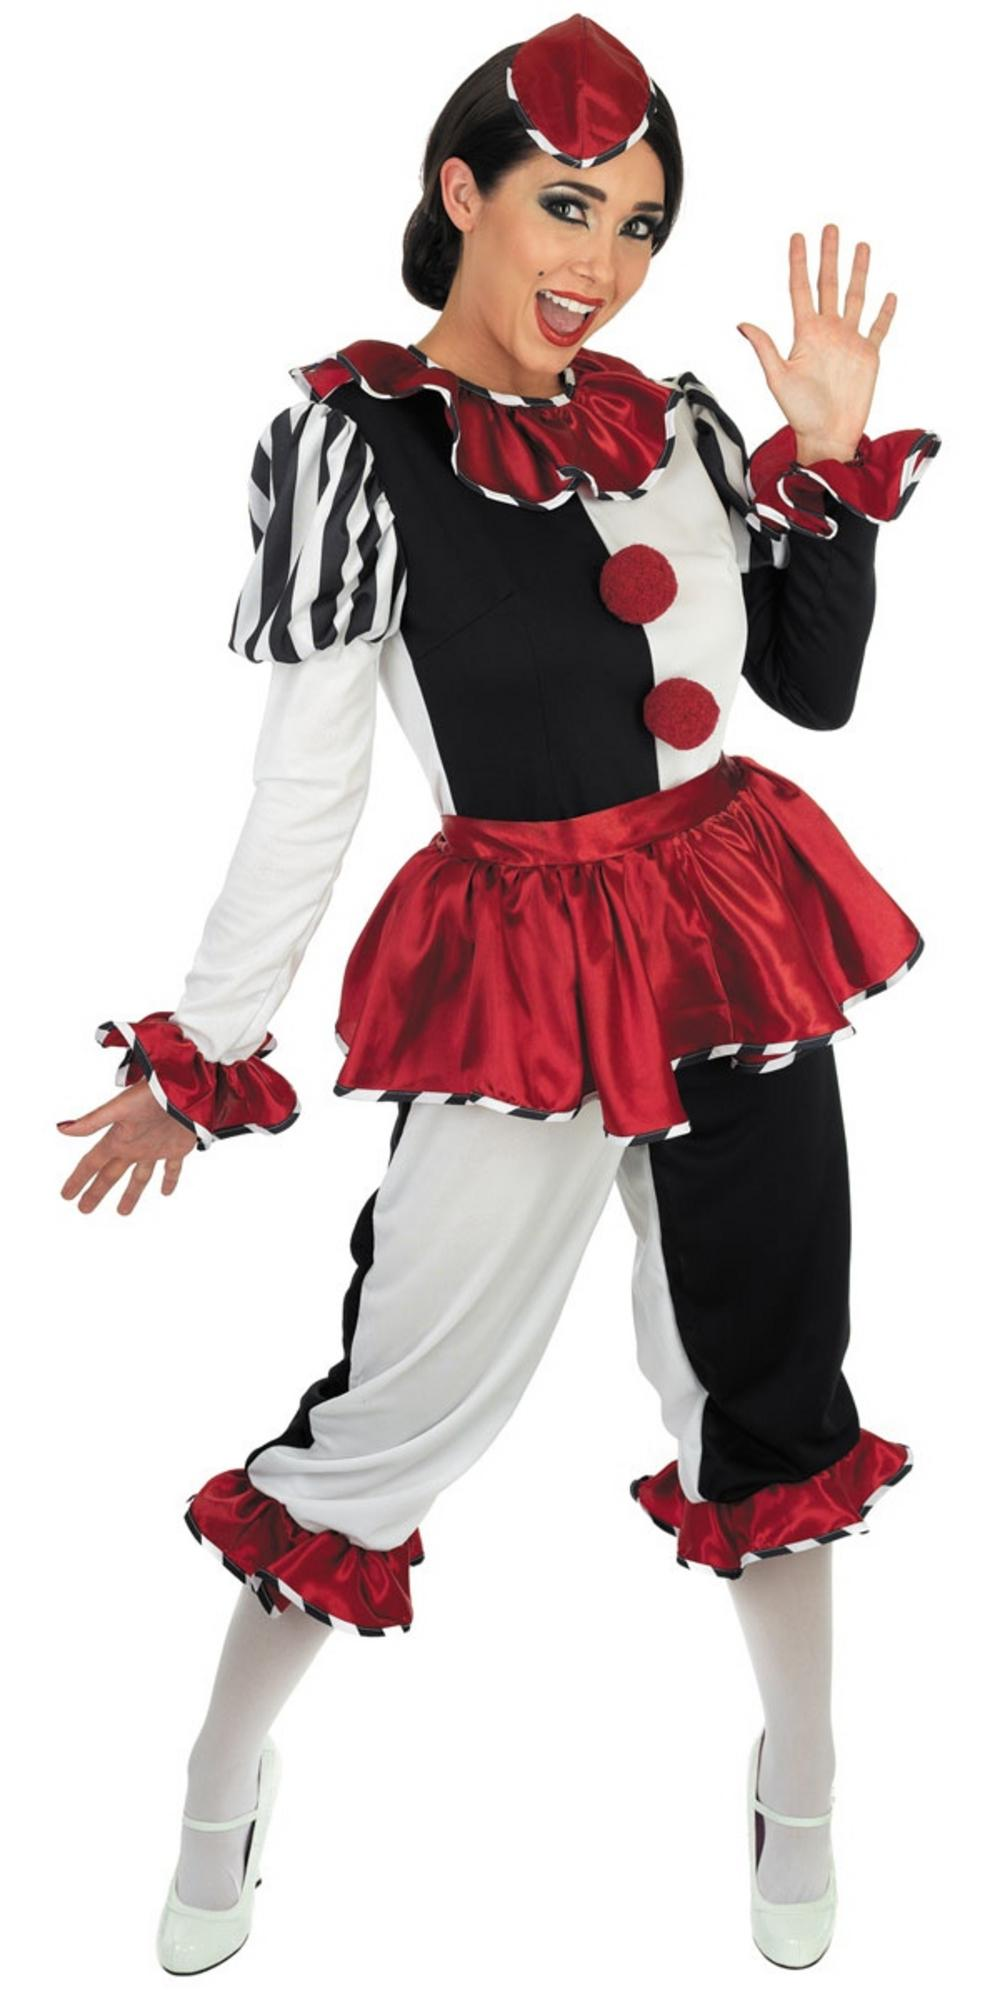 Harlequin Clown Makeup http://www.megafancydress.co.uk/ladies-harlequin-clown-costume-fs2769.html